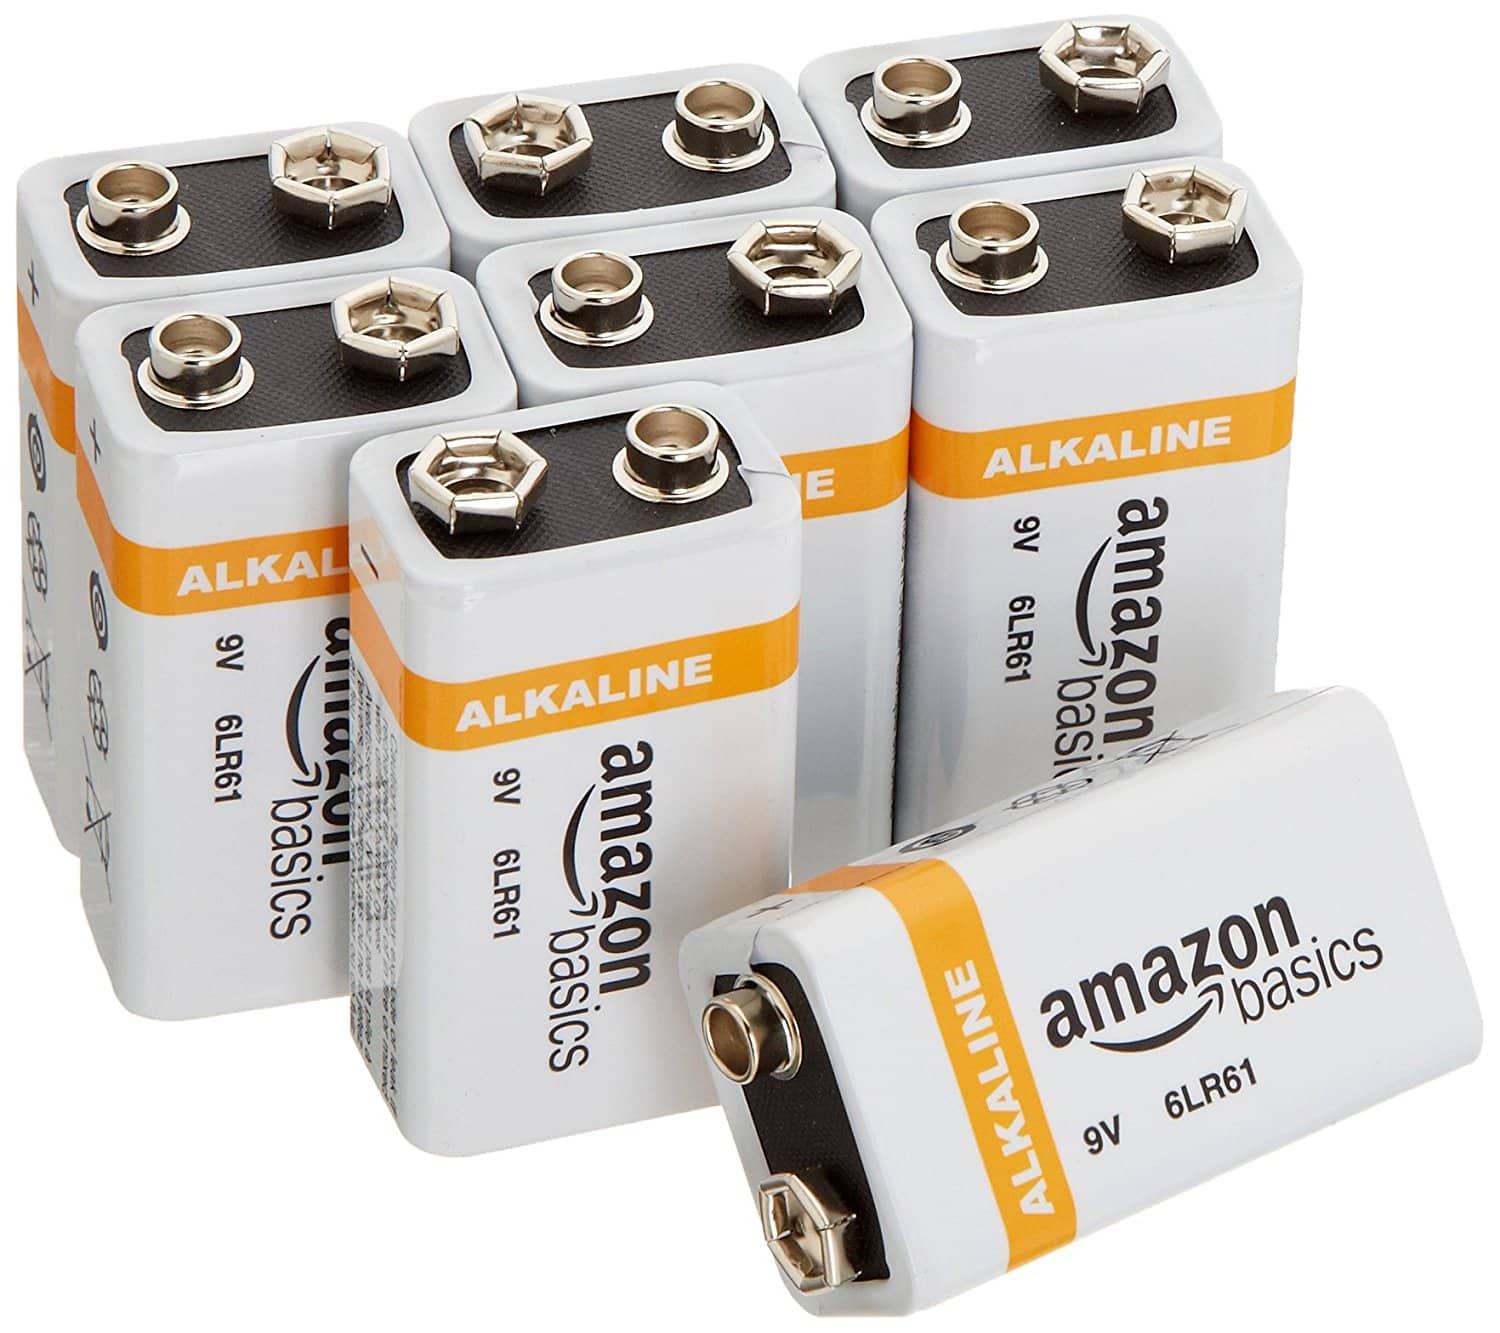 AmazonBasics 9 Volt Everyday Alkaline Batteries (8-Pack) for $9.49